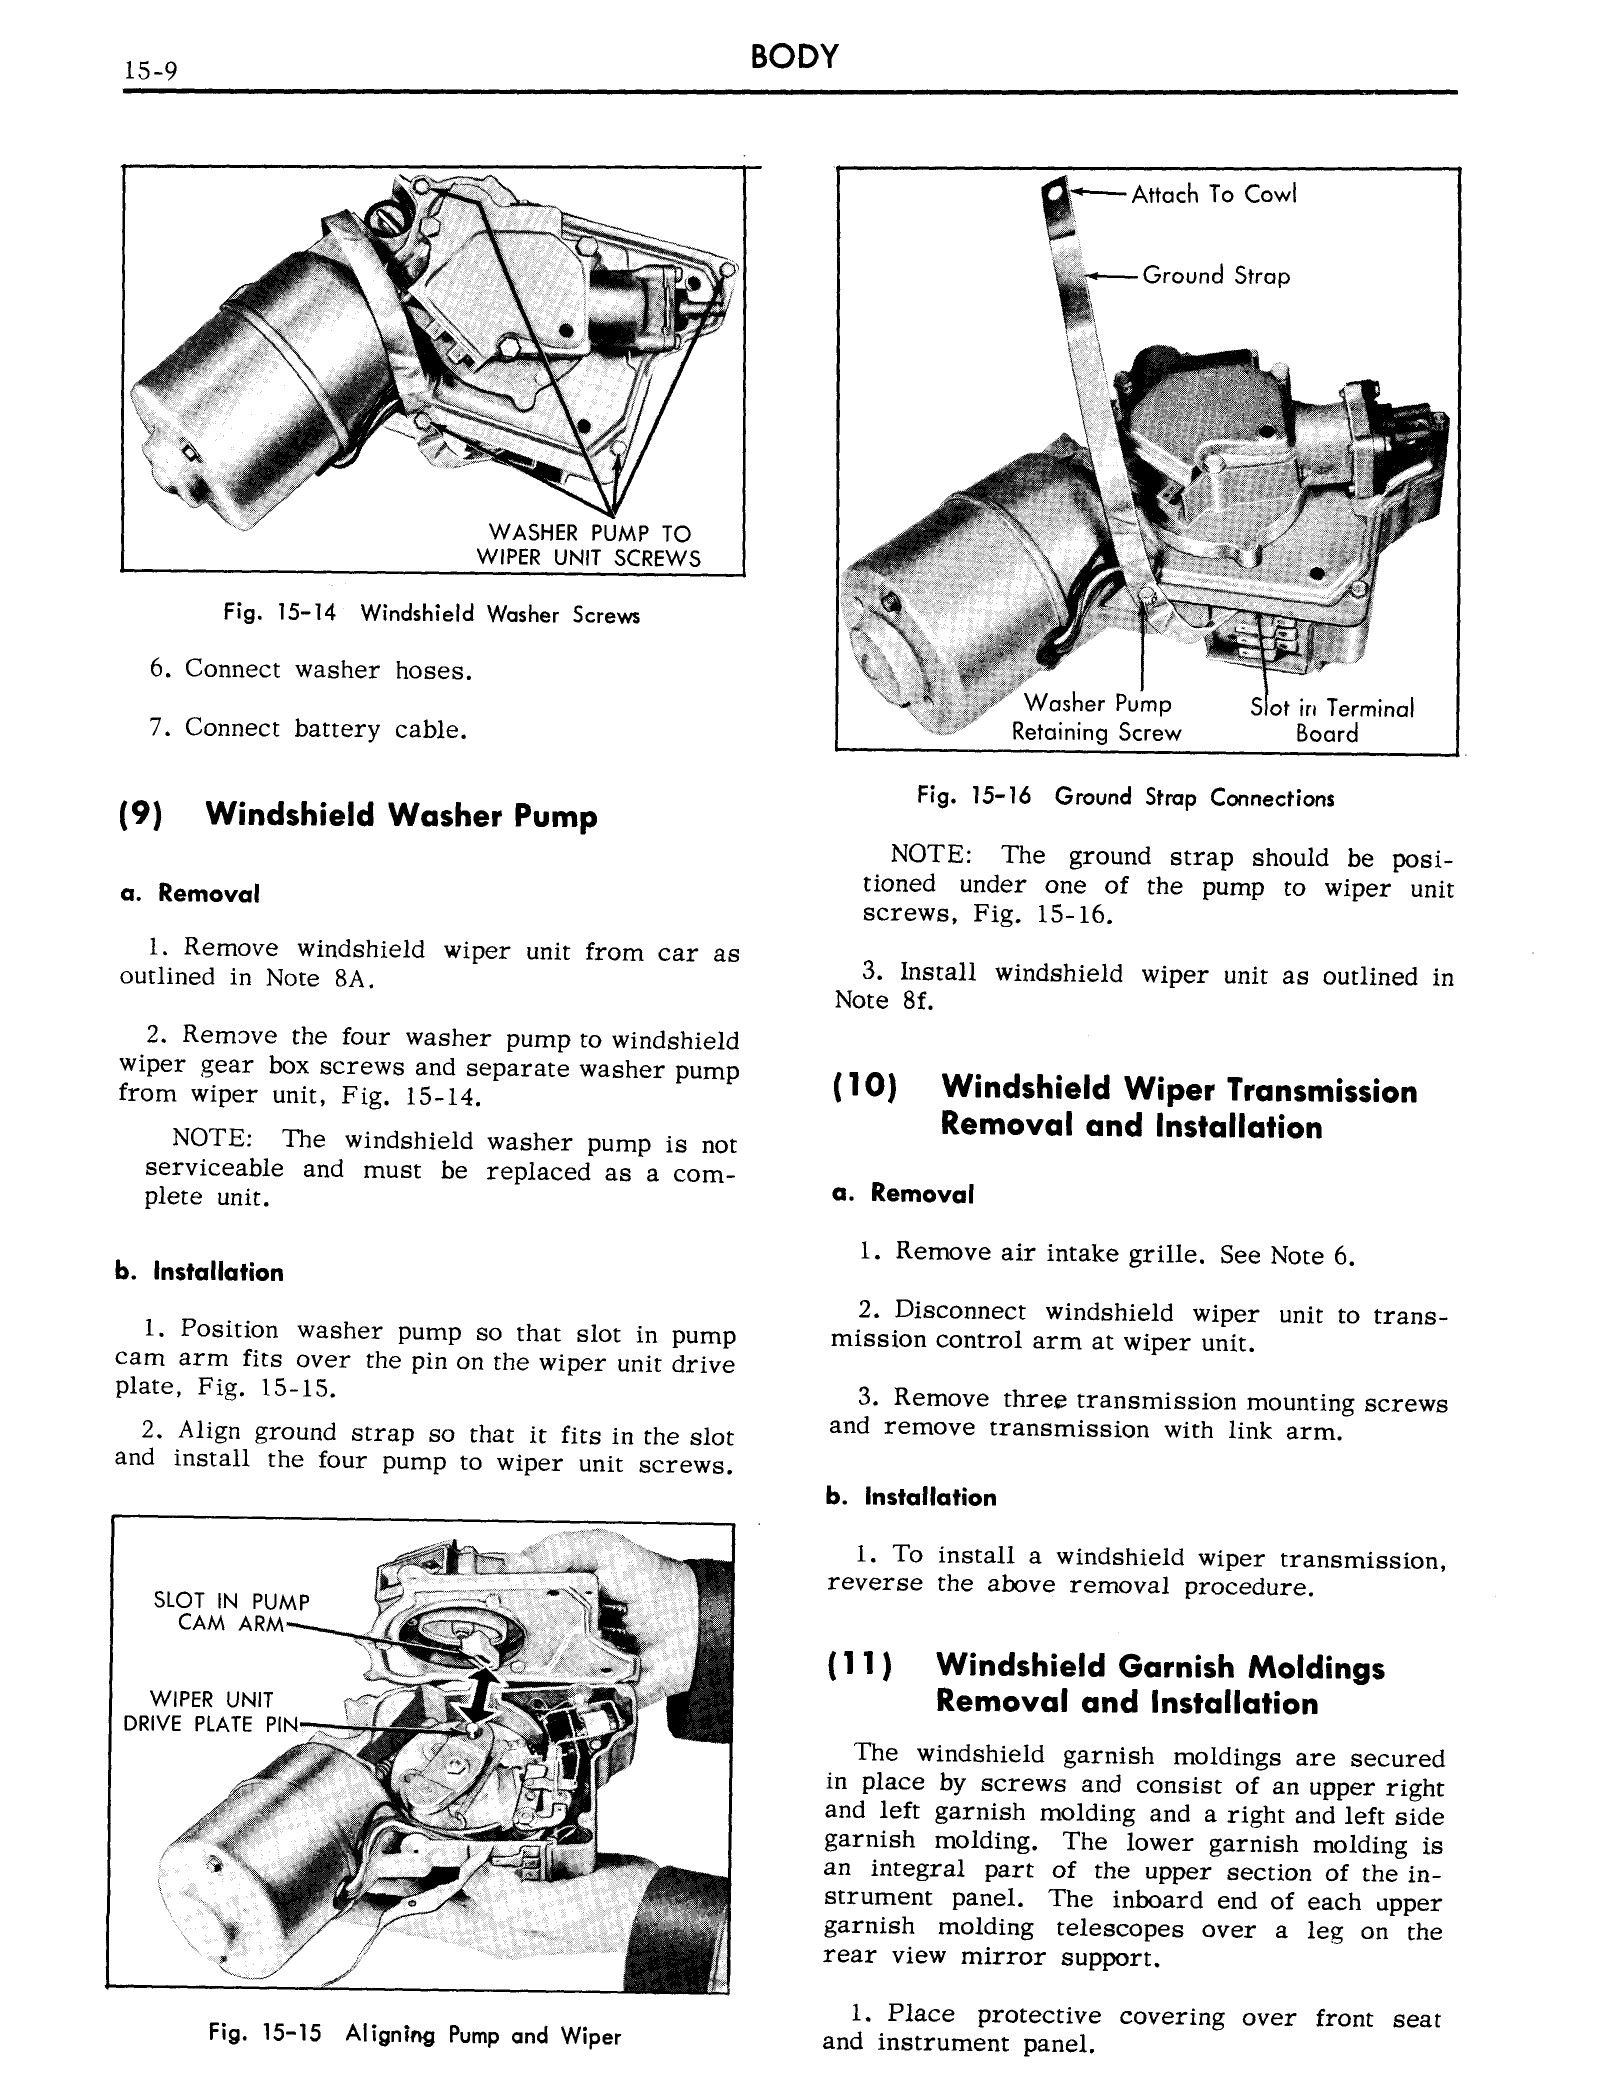 1959 Cadillac Shop Manual- Body Page 9 of 99